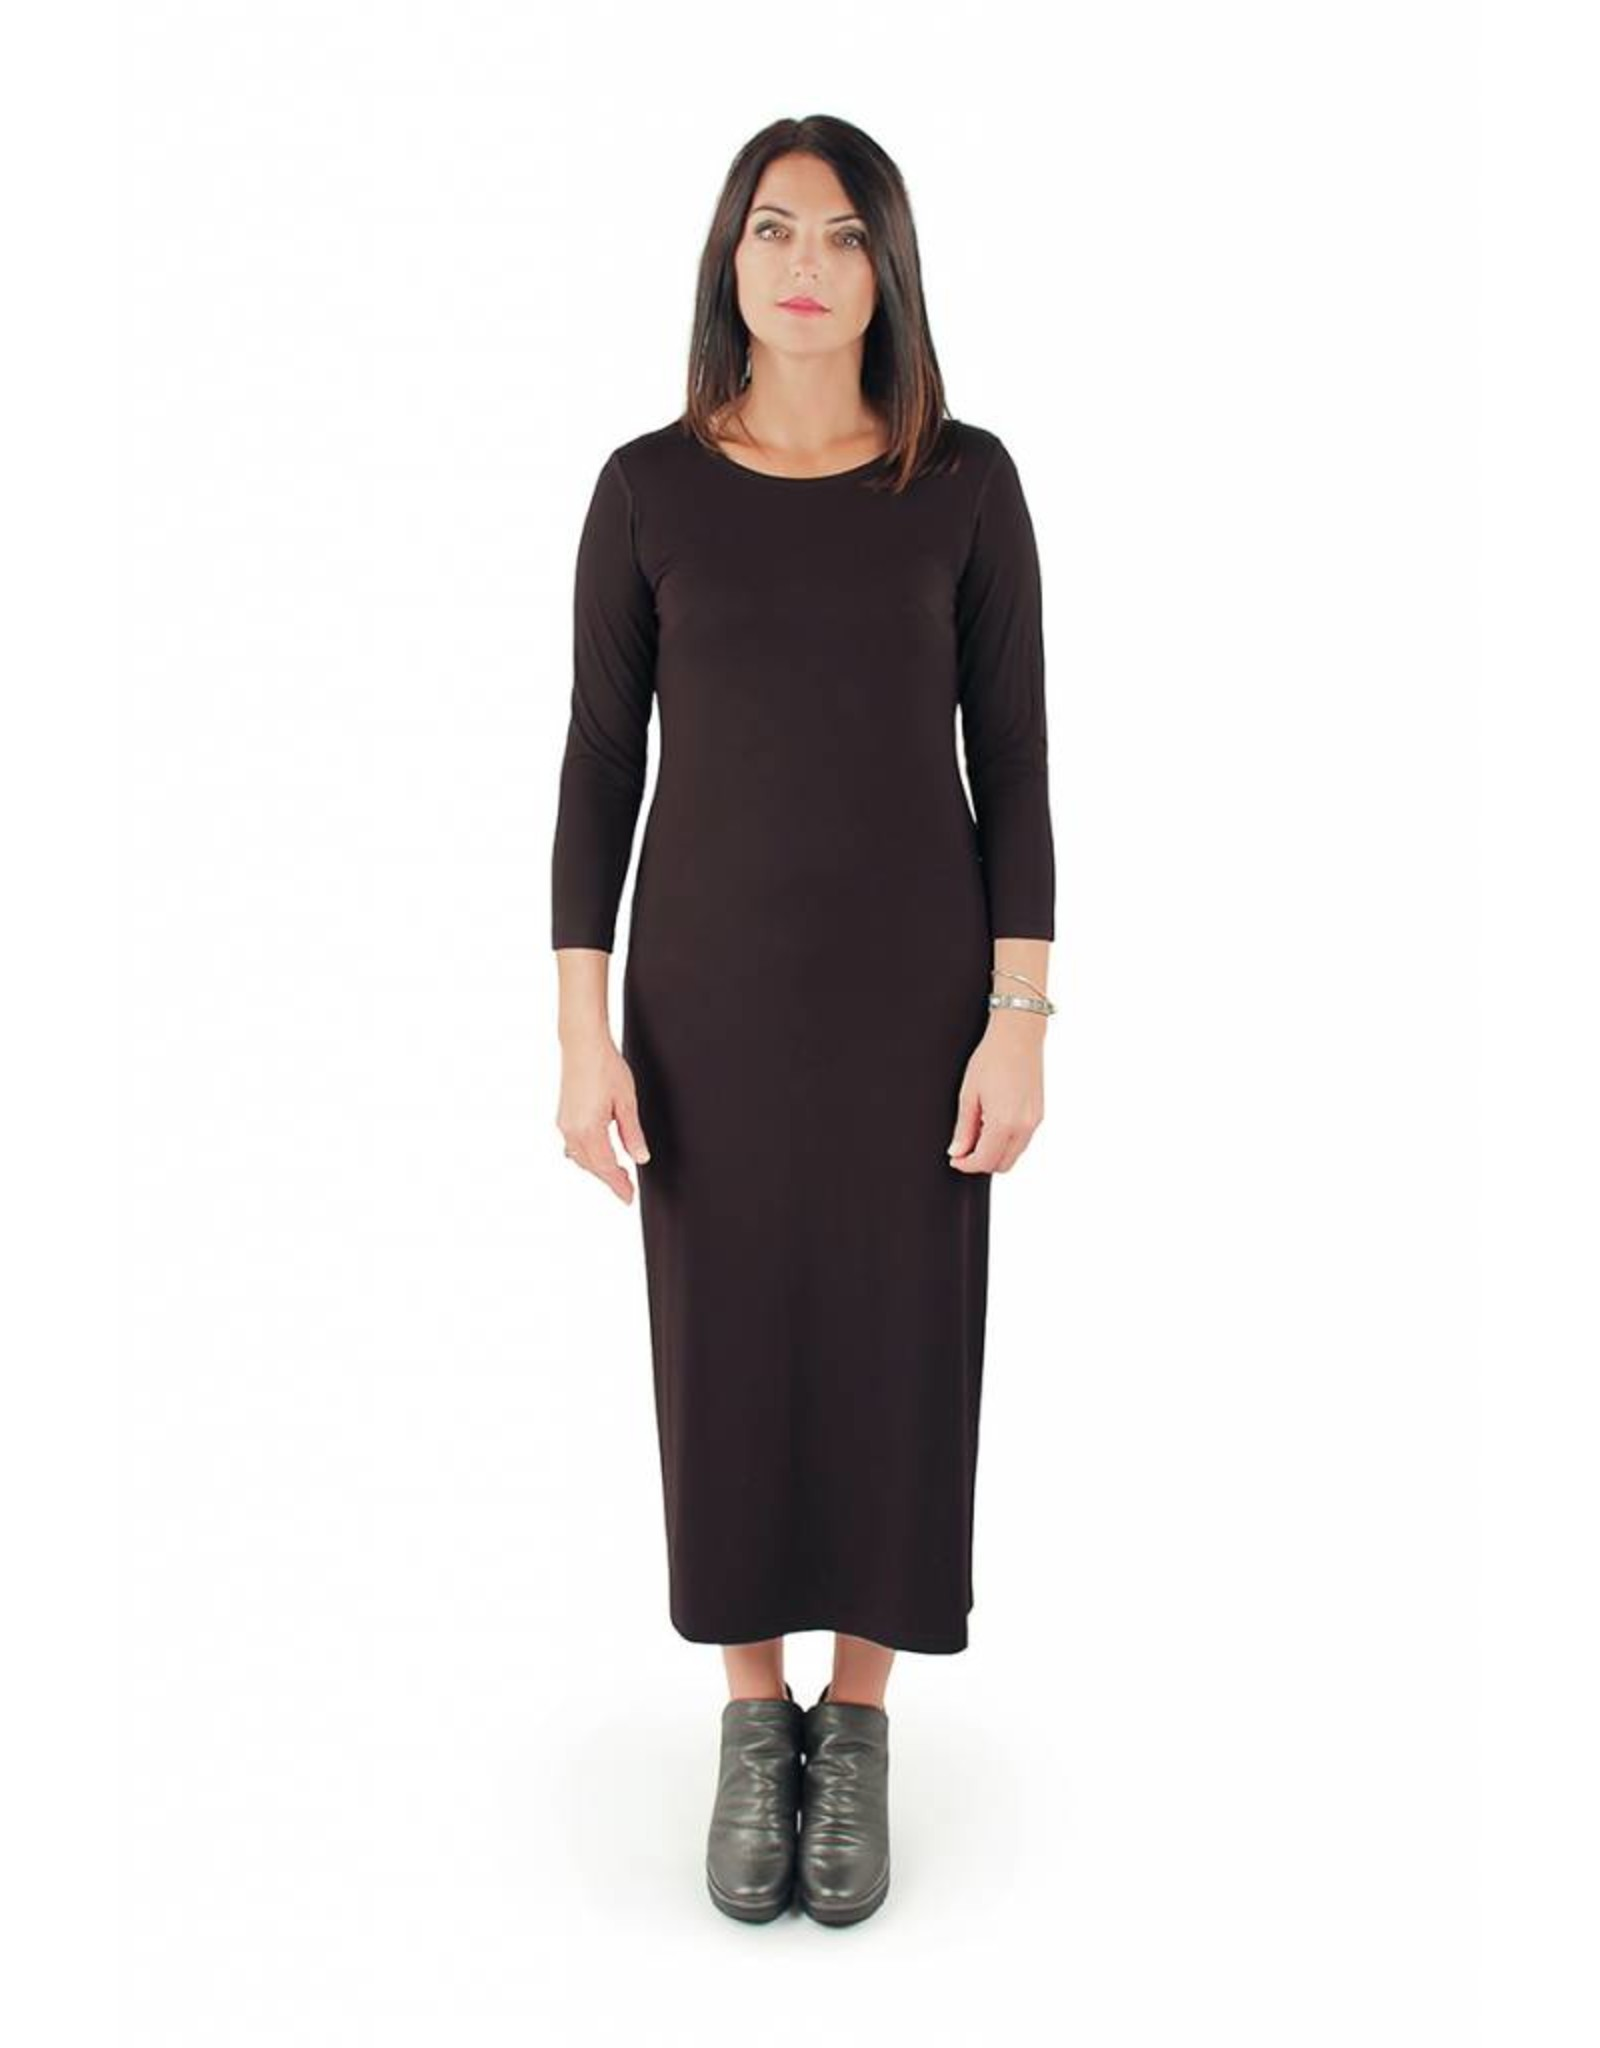 Lousje & Bean L&B- Cora Dress